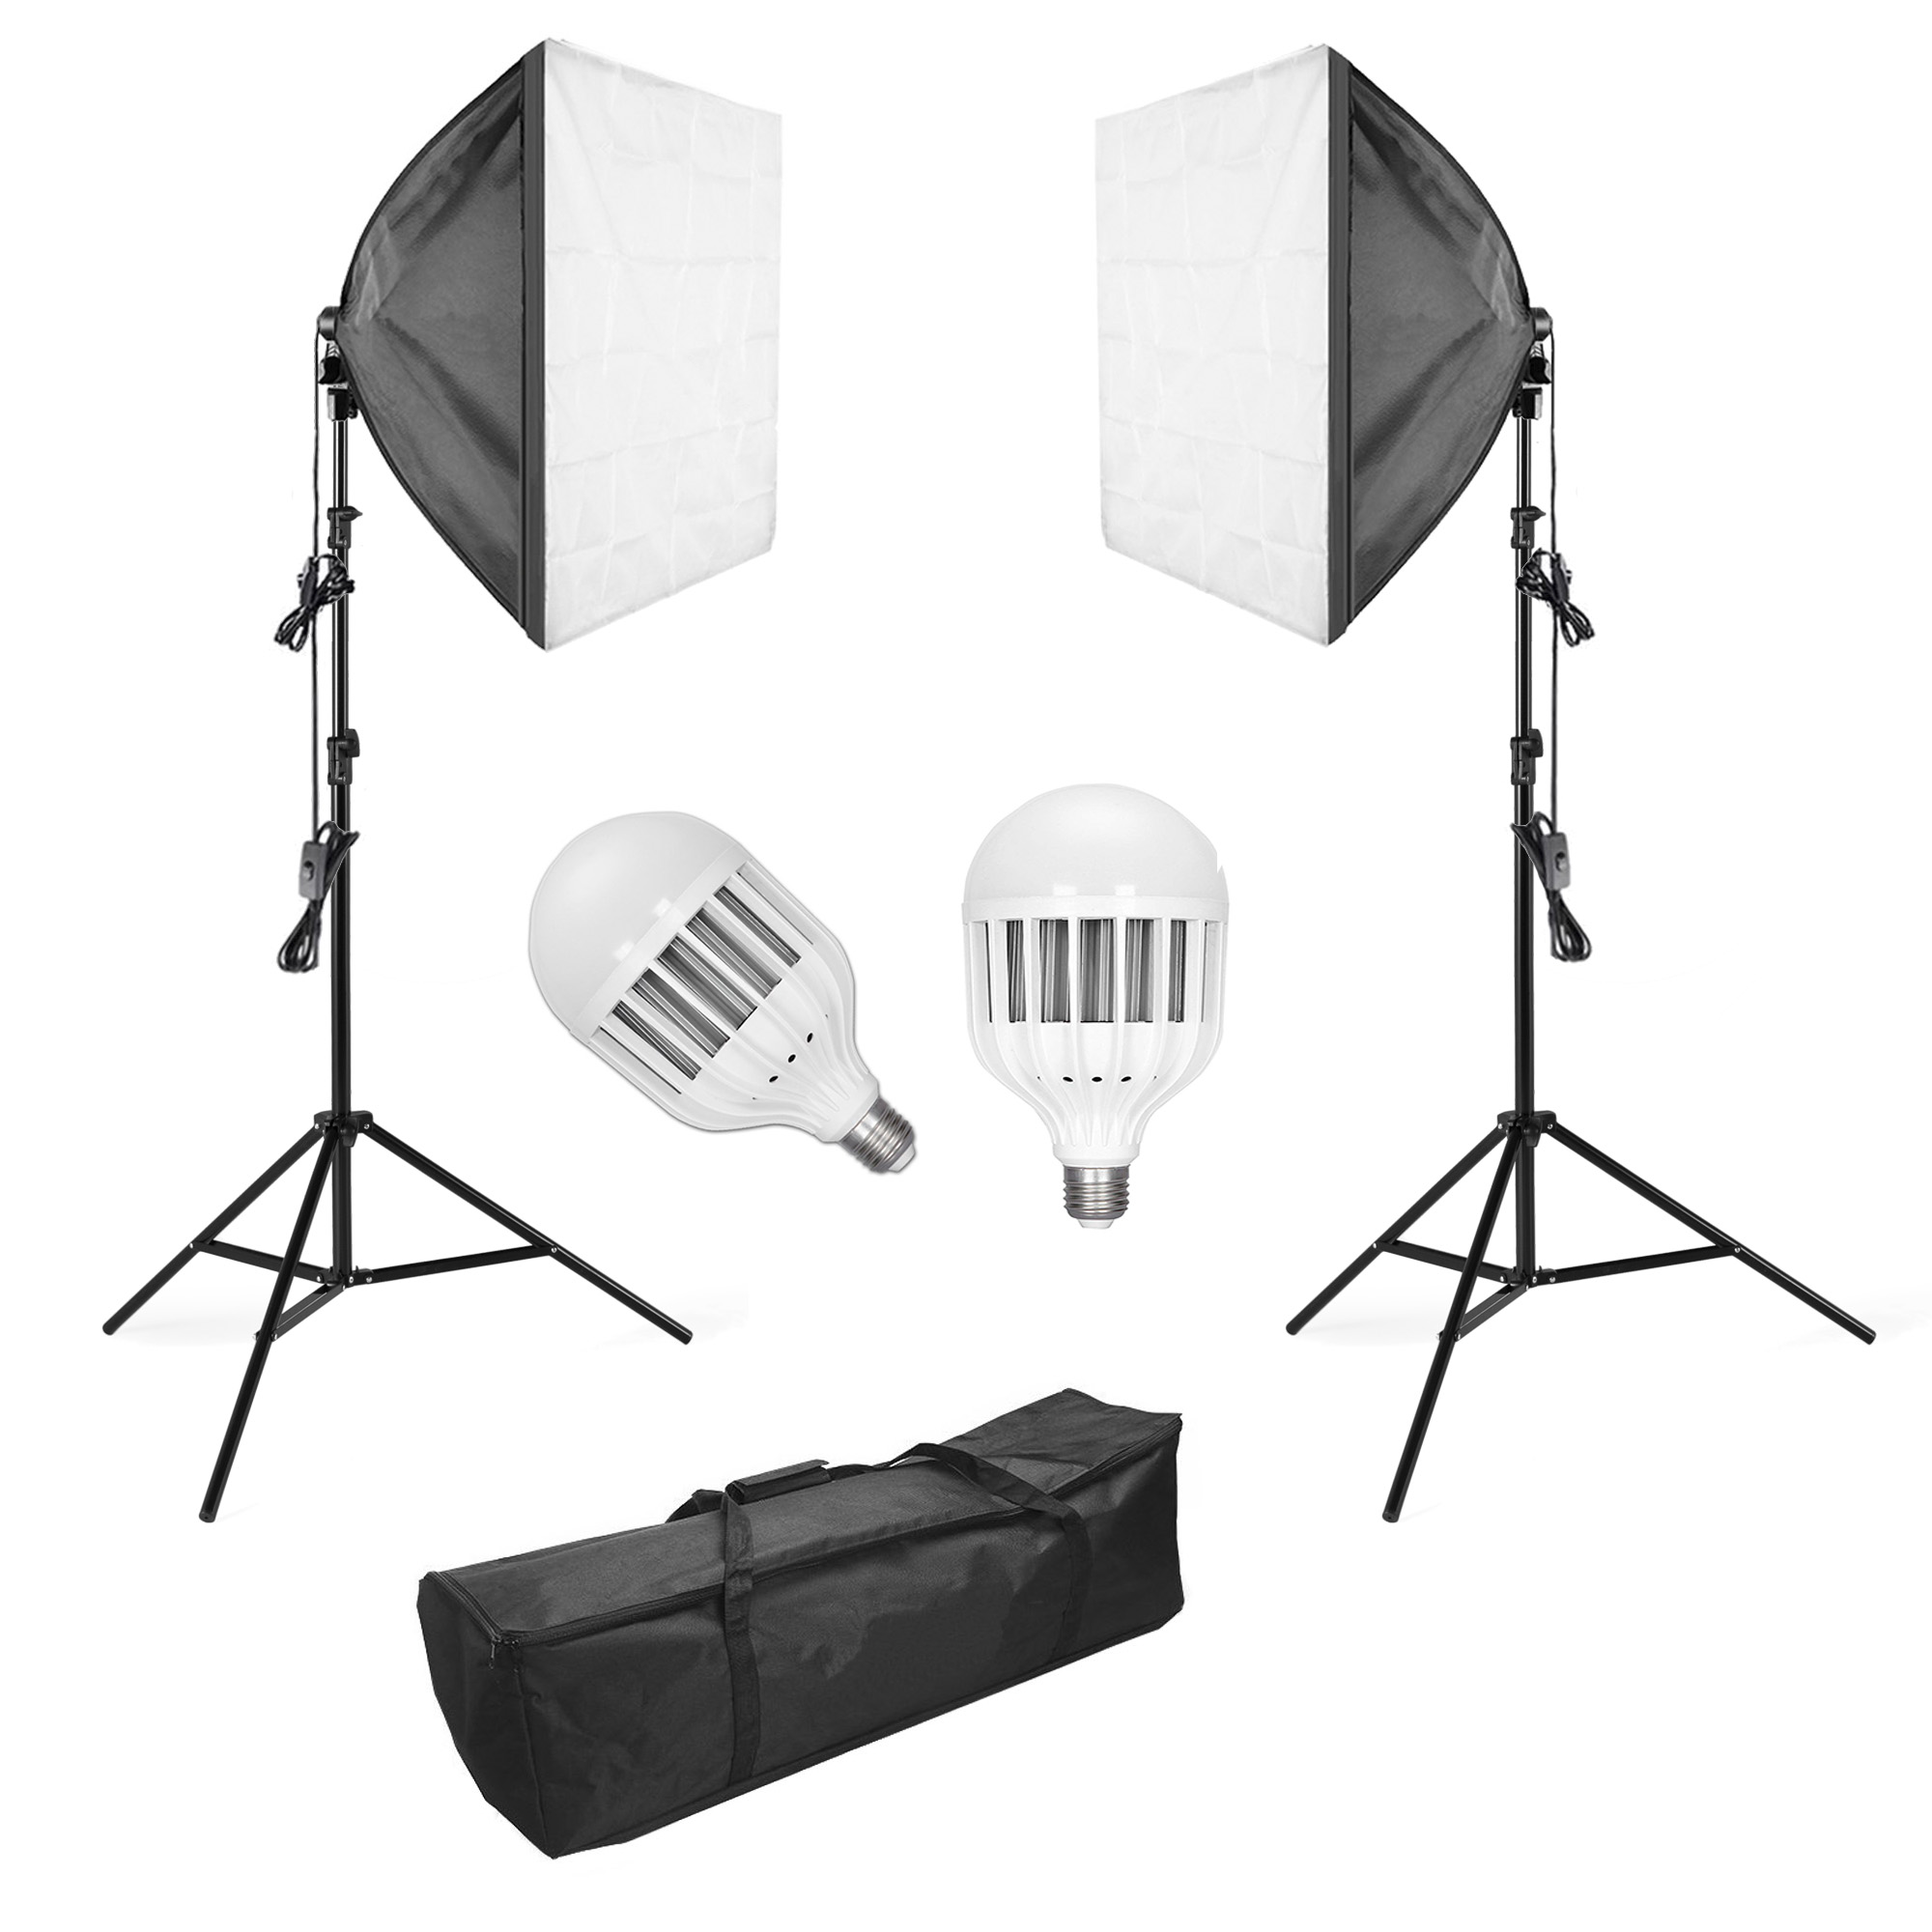 Details About 2 Led Softbox Lighting Kit Portable Continuous Photography Video Studio Lights